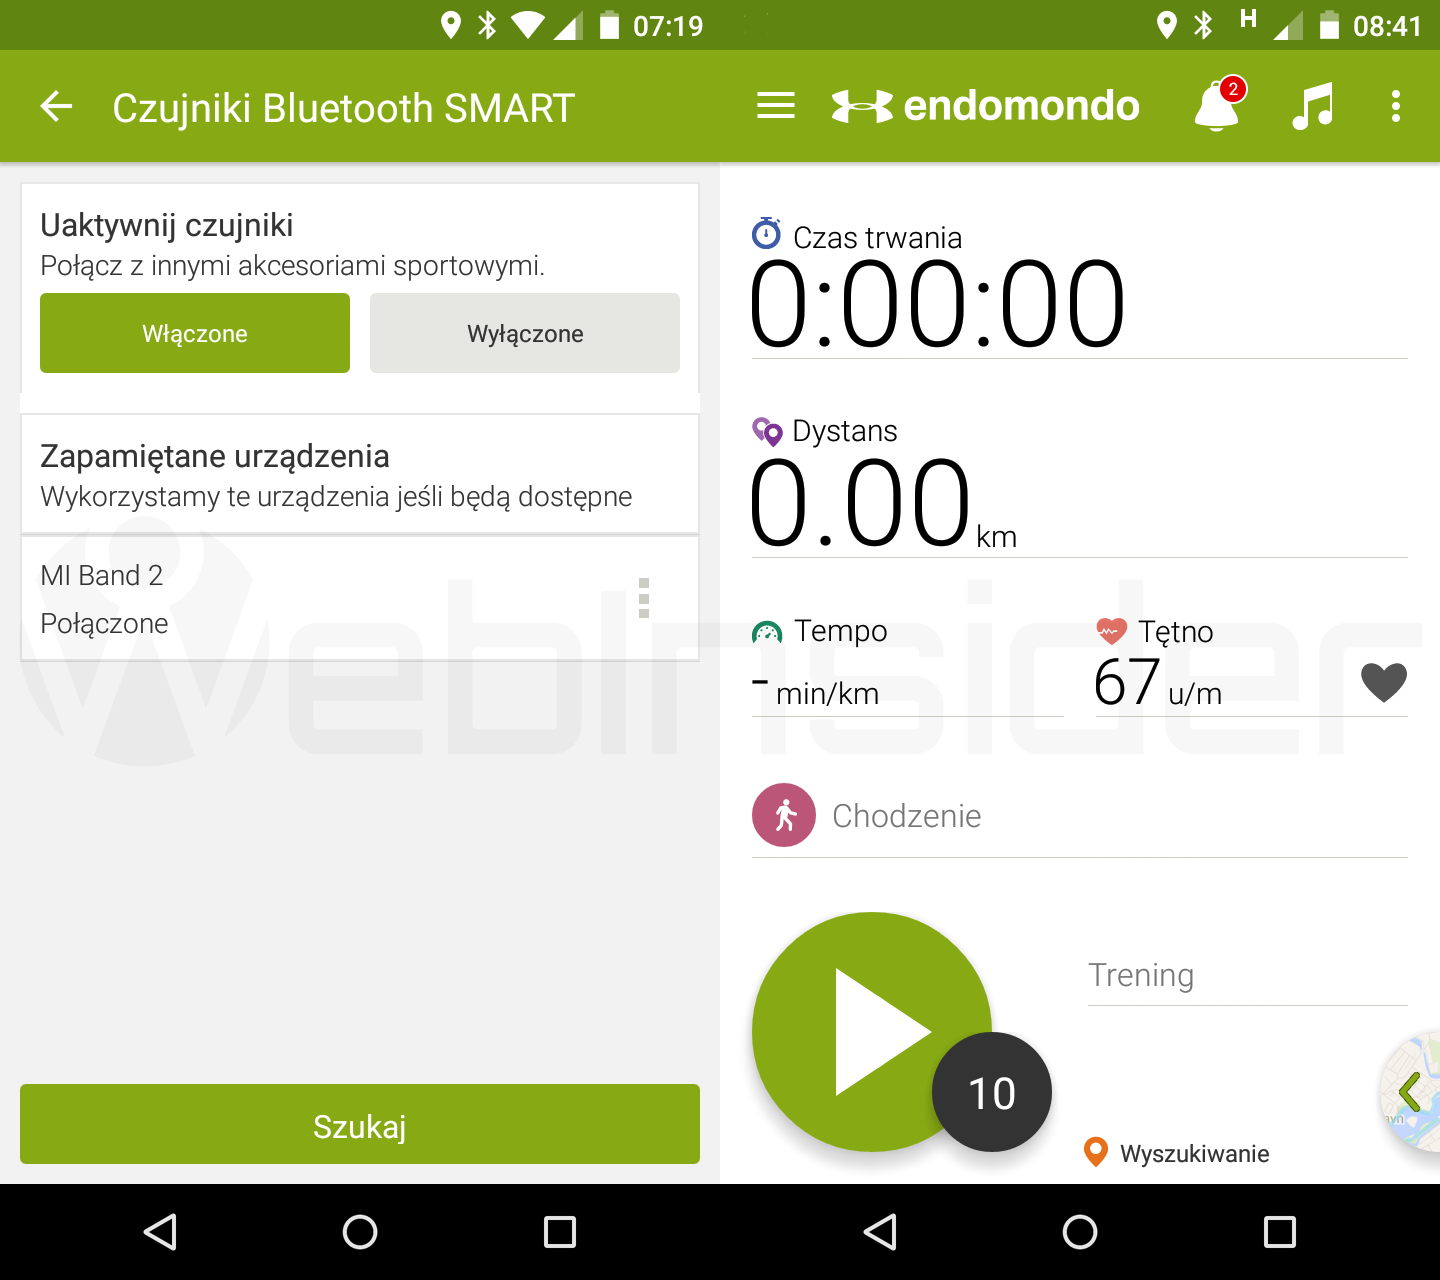 xiaomi_mi-band-2_mi-fit_endomondo